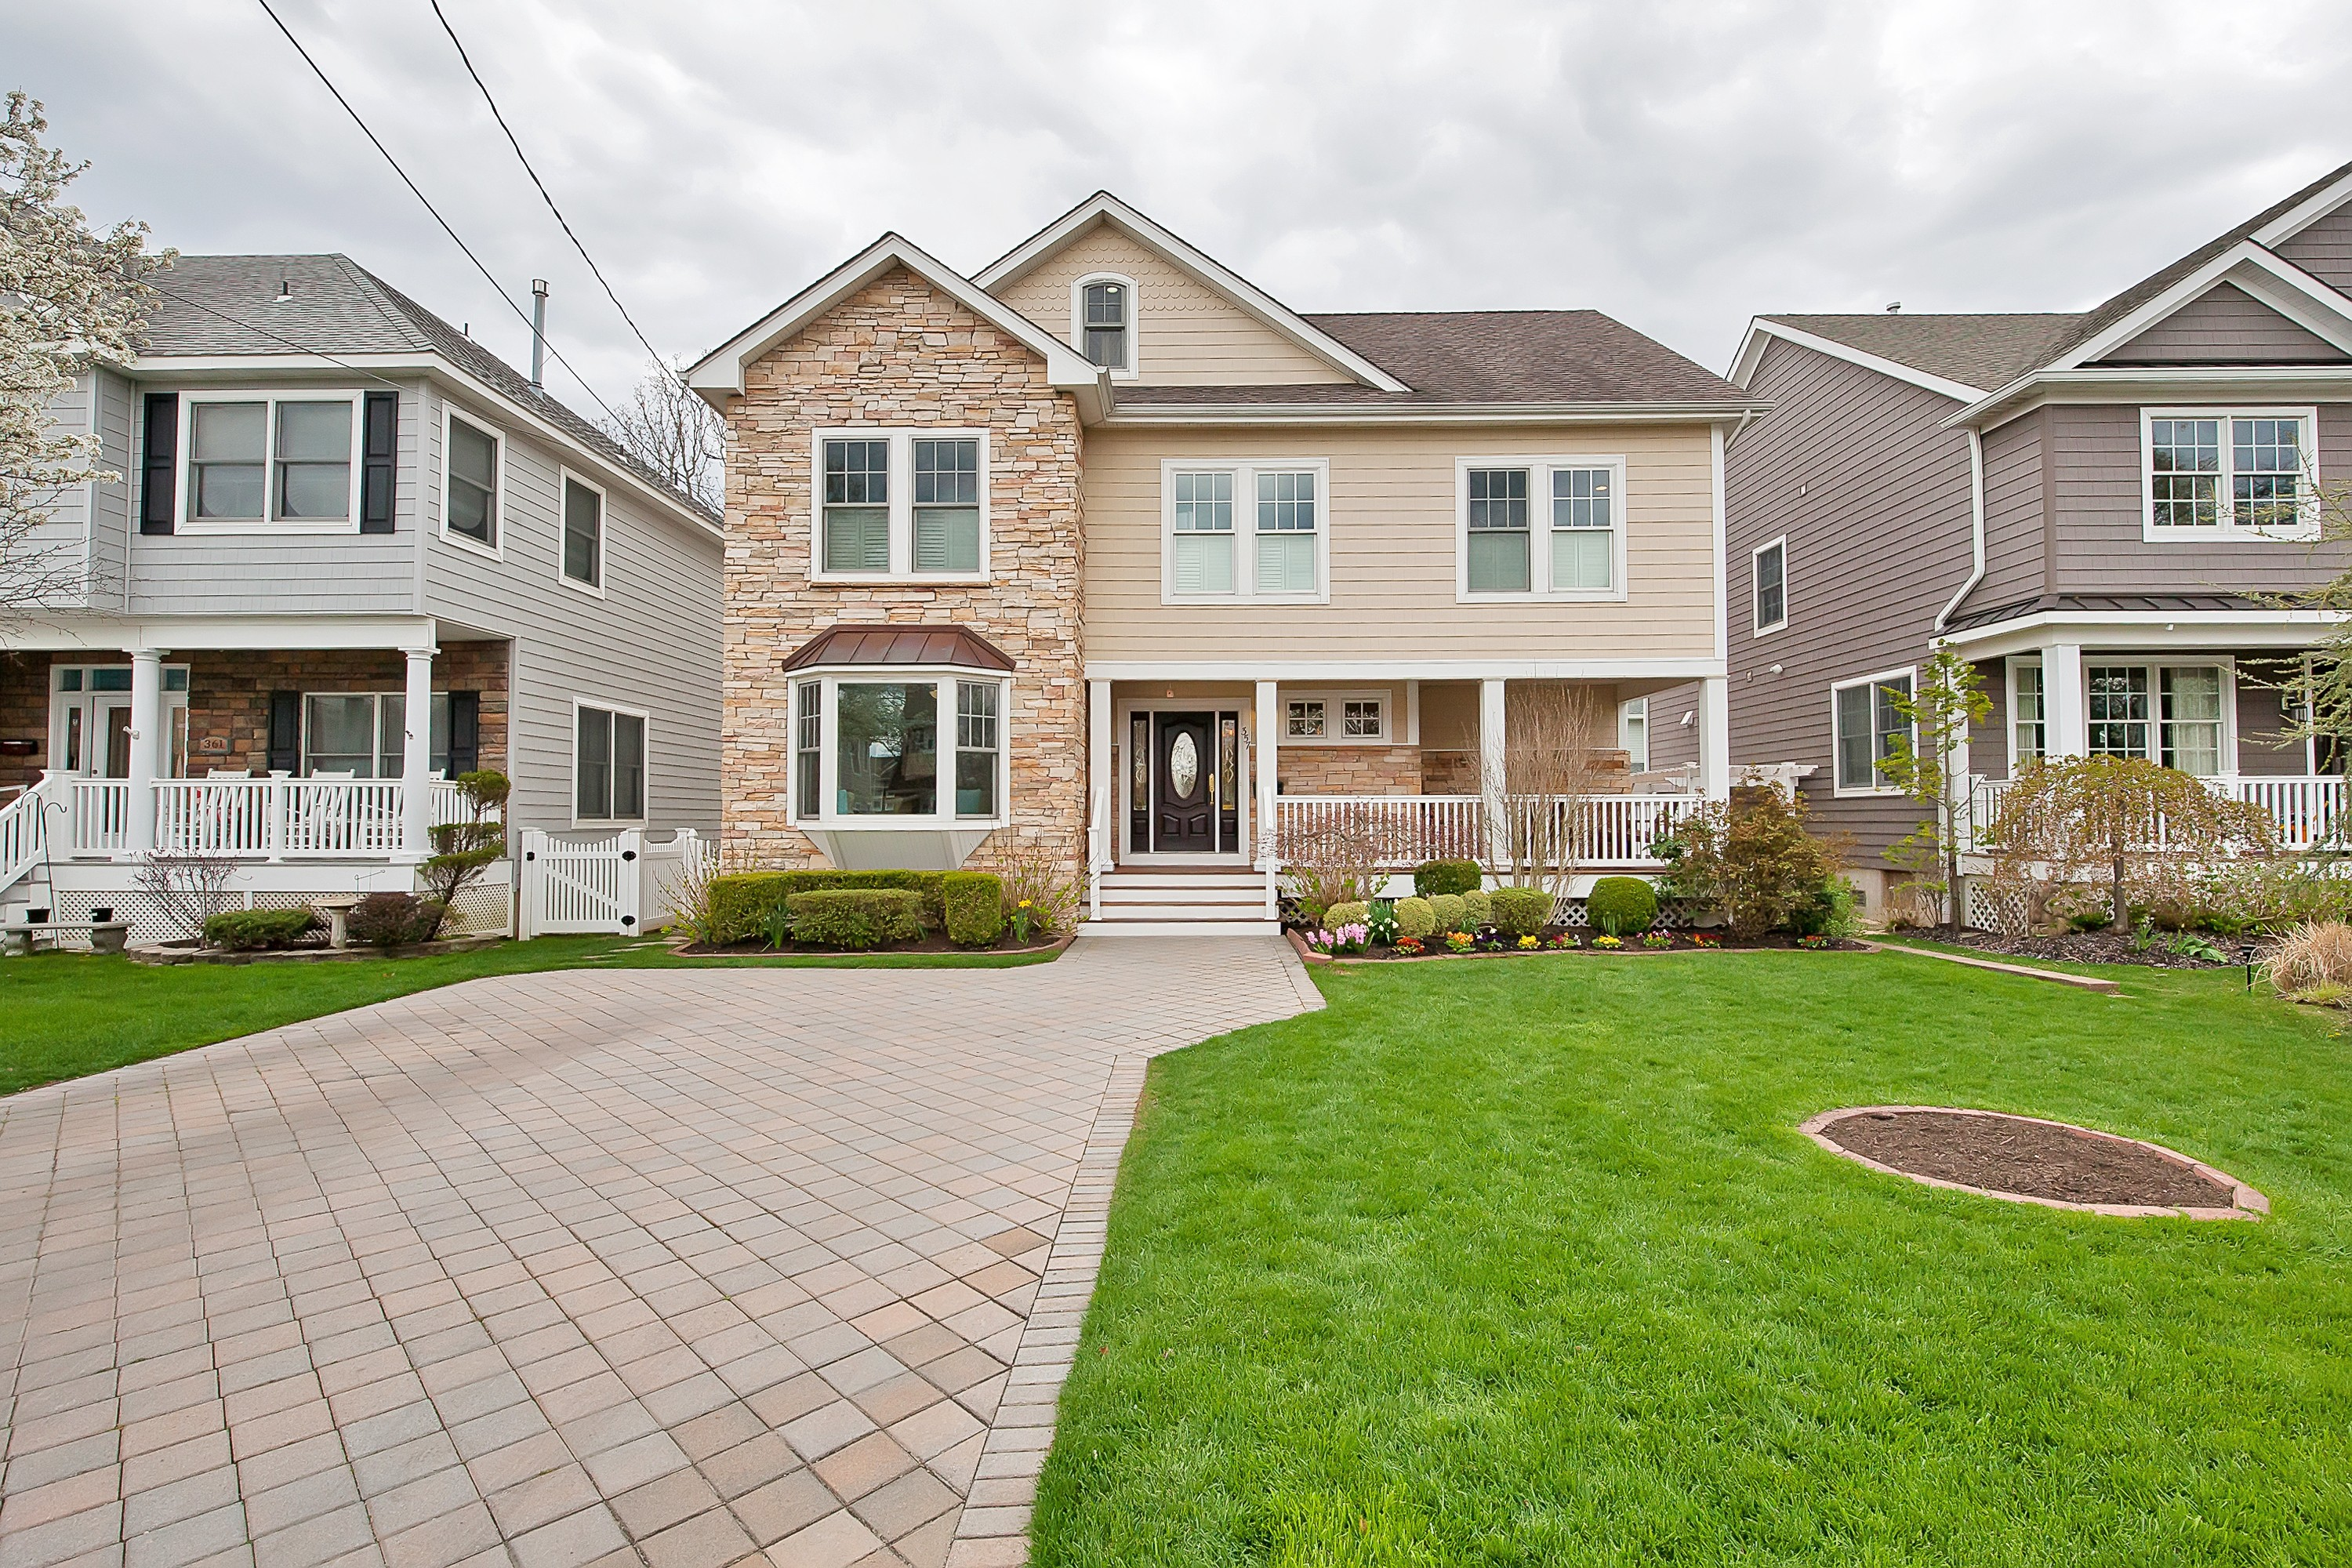 Single Family Home for Sale at Pristine Custom Home 357 Pine Ave Manasquan, New Jersey 08736 United States